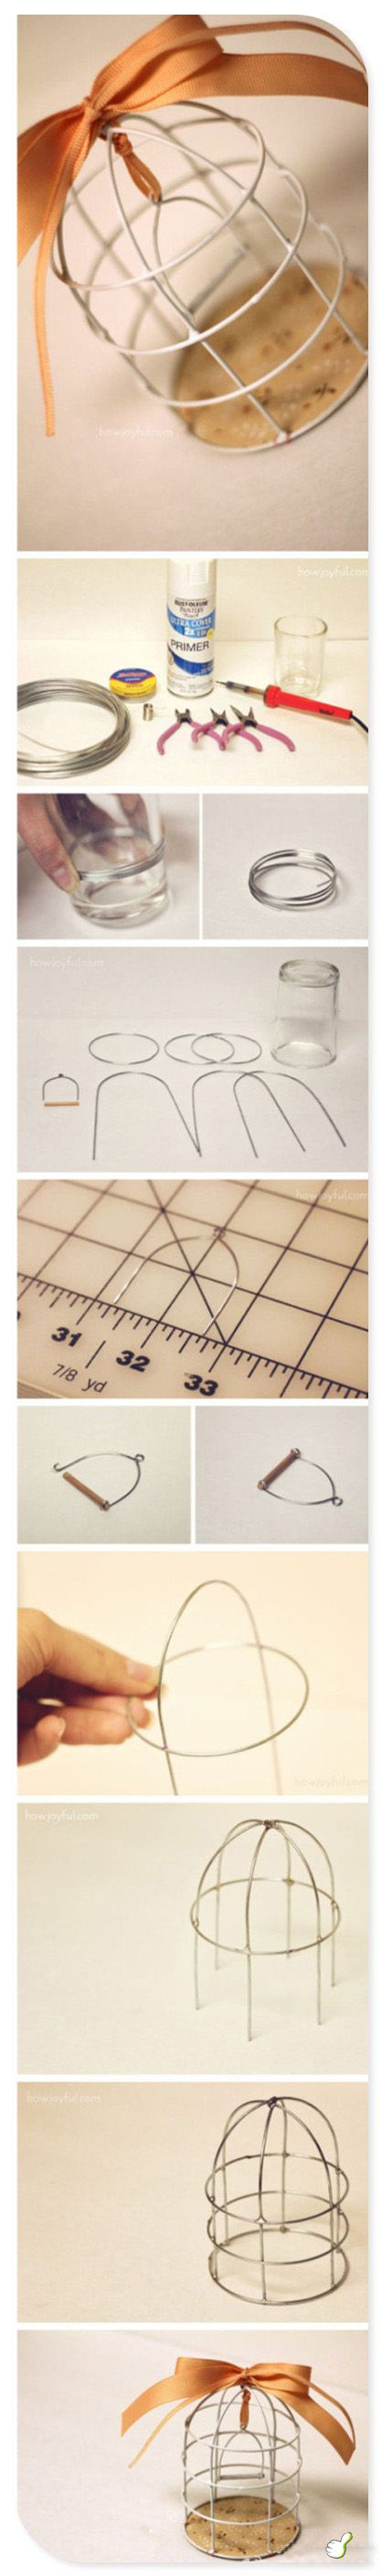 How to make small birdcages with wire! So cute for tealight holders or maybe a chandelier!